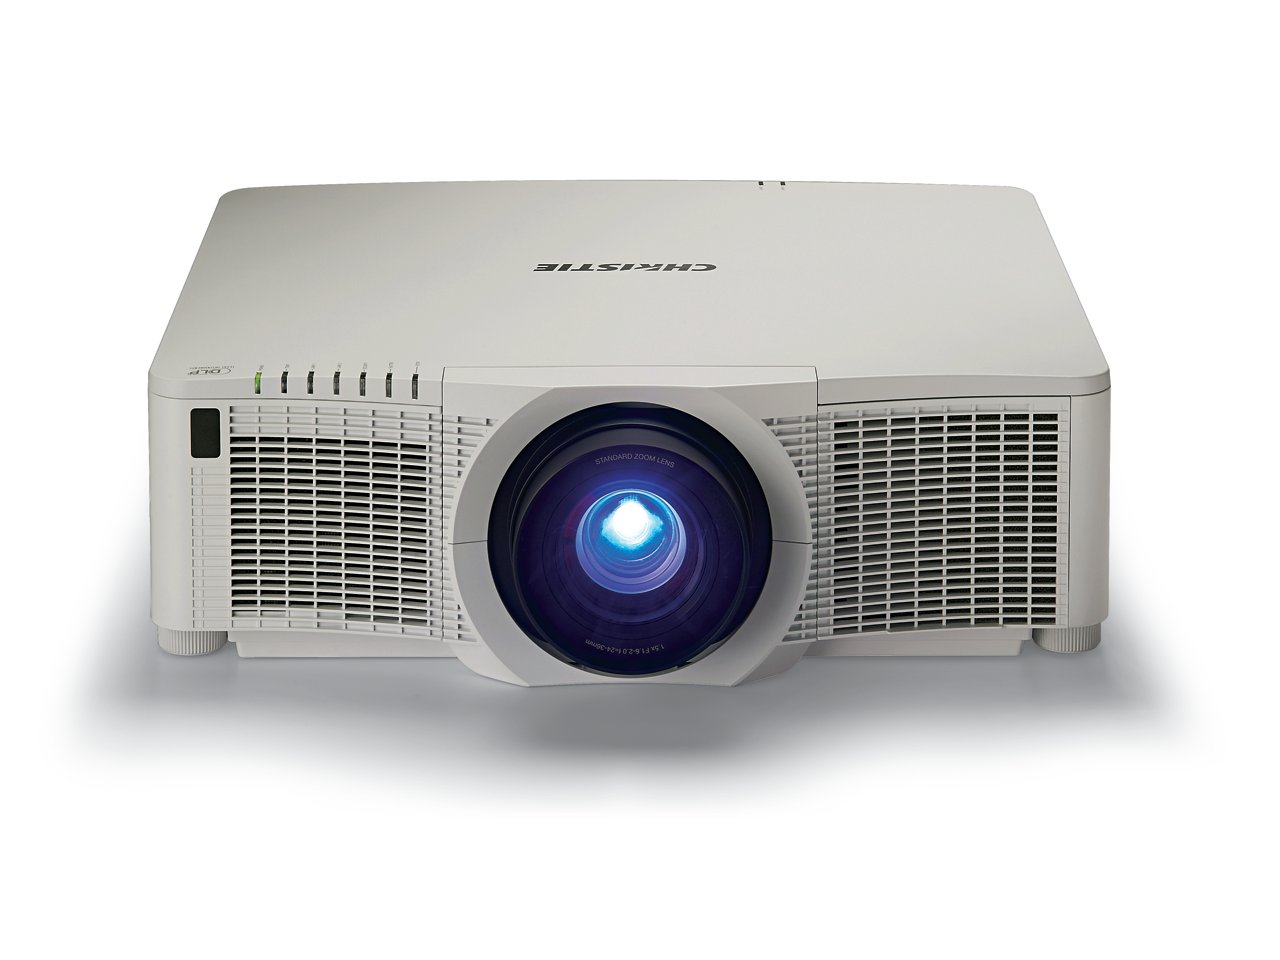 Christie DHD851-Q 1DLP projector | 121-030104-01 (white) | 121-030115-01 (black)